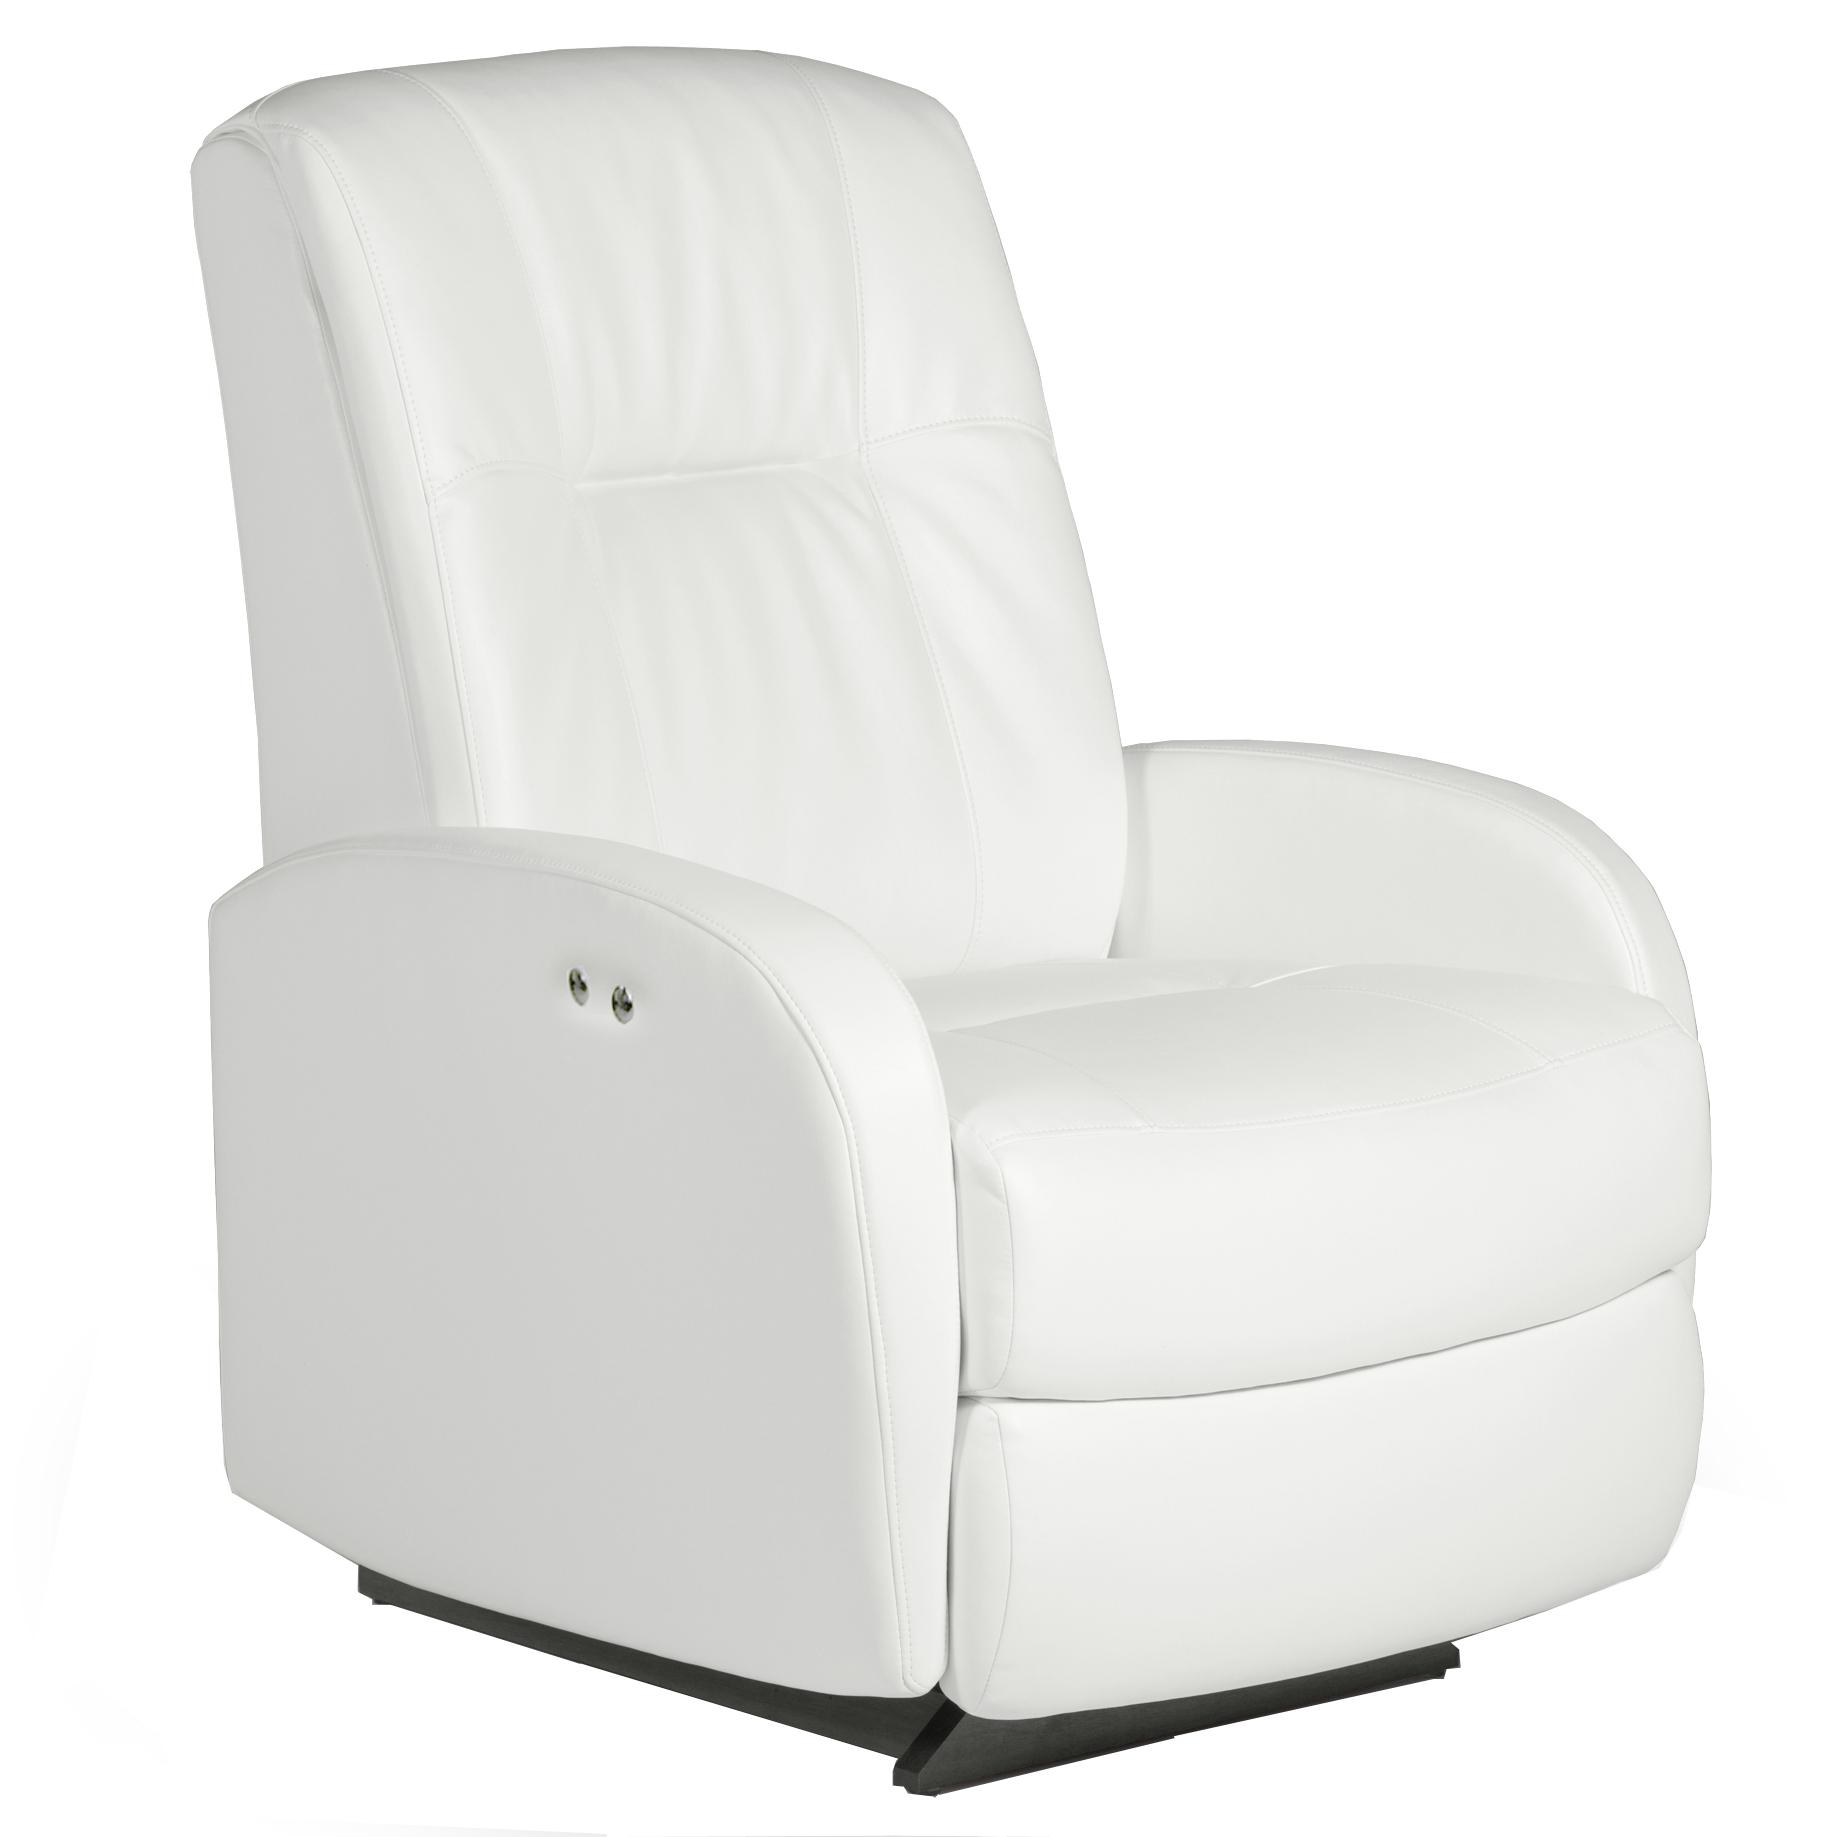 Best Home Furnishings Recliners - Petite Ruddick Power Space Saver Recliner - Item Number: 2AP44BL